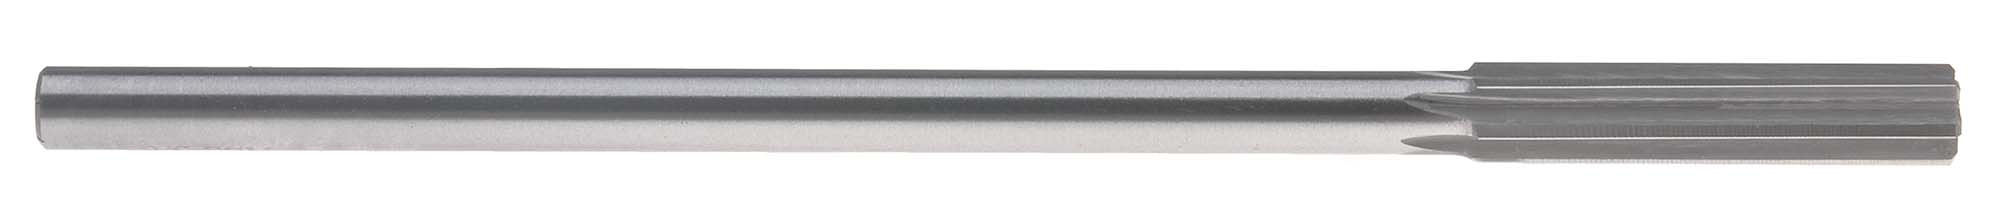 .4385 Straight Shank Chucking Reamer, Straight Flute, High Speed Steel